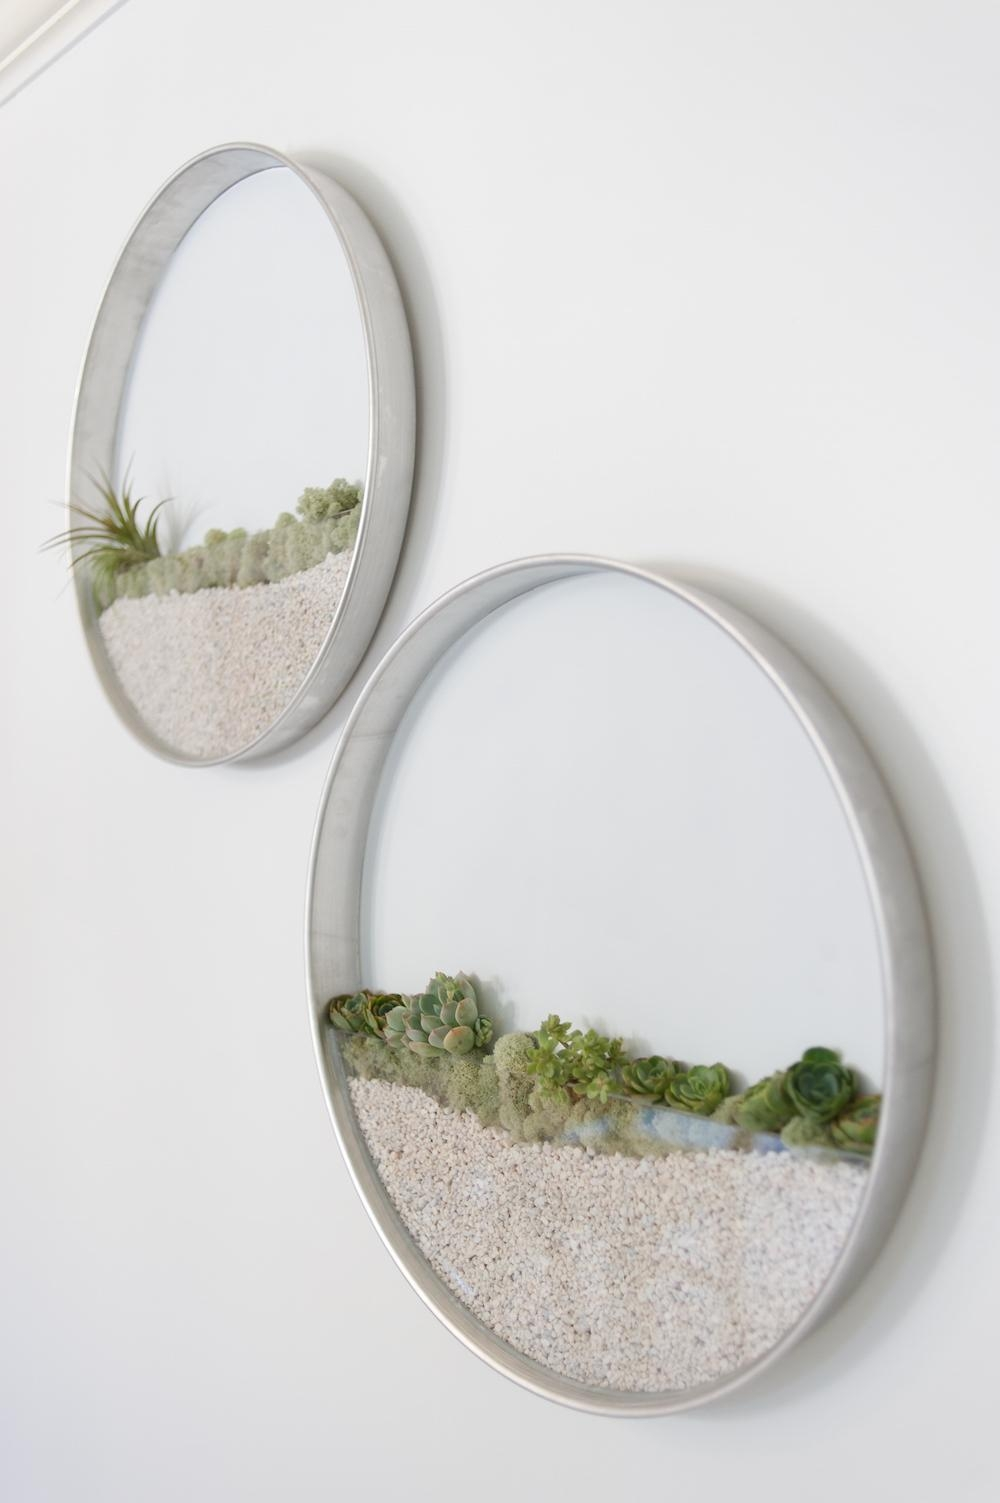 Circular Framed Planters Add Living Art To Your Walls | Colossal With Regard To Air Plant Wall Art (Image 6 of 20)